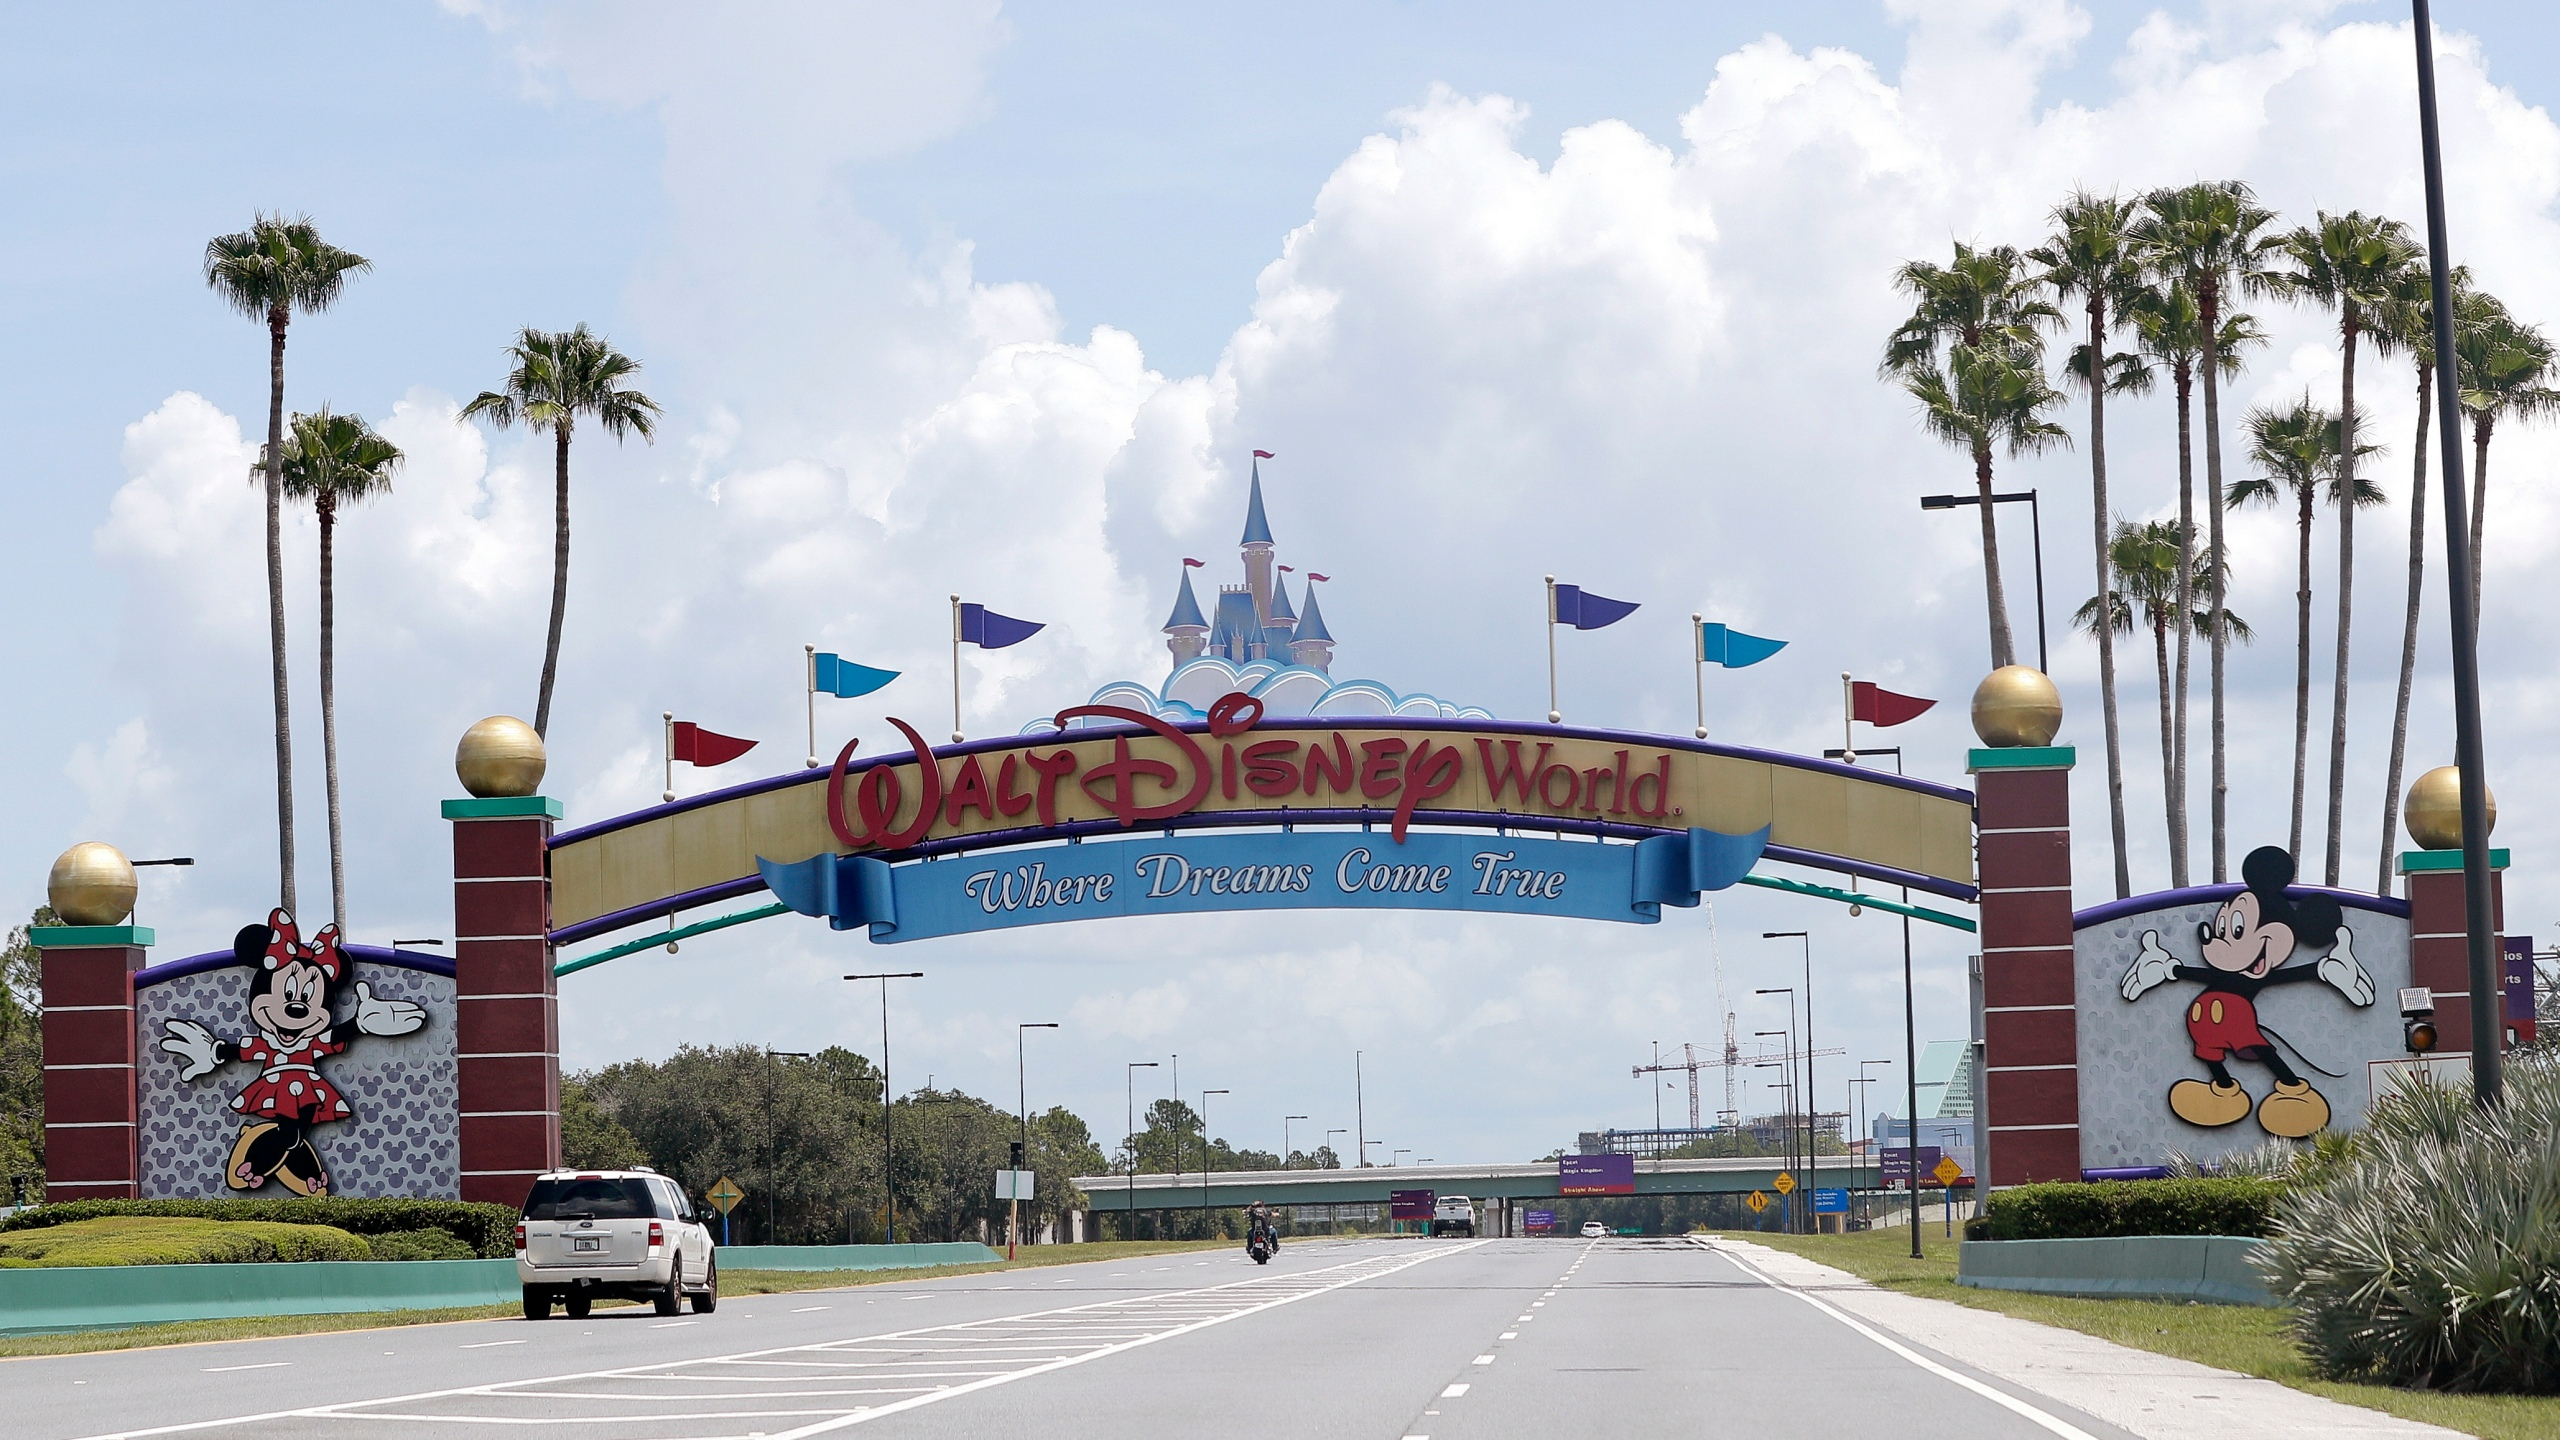 FILE - In this Thursday, July 2, 2020, file photo, cars drive under a sign greeting visitors near the entrance to Walt Disney World, in Lake Buena Vista, Fla. The Walt Disney Co. is announcing plans to lay off 4,000 more workers in its theme parks division in California and Florida due to the COVID-19 pandemic's effect on the industry. The company has been limiting attendance at its parks and changing protocols to allow for social distancing. (AP Photo/John Raoux, File)